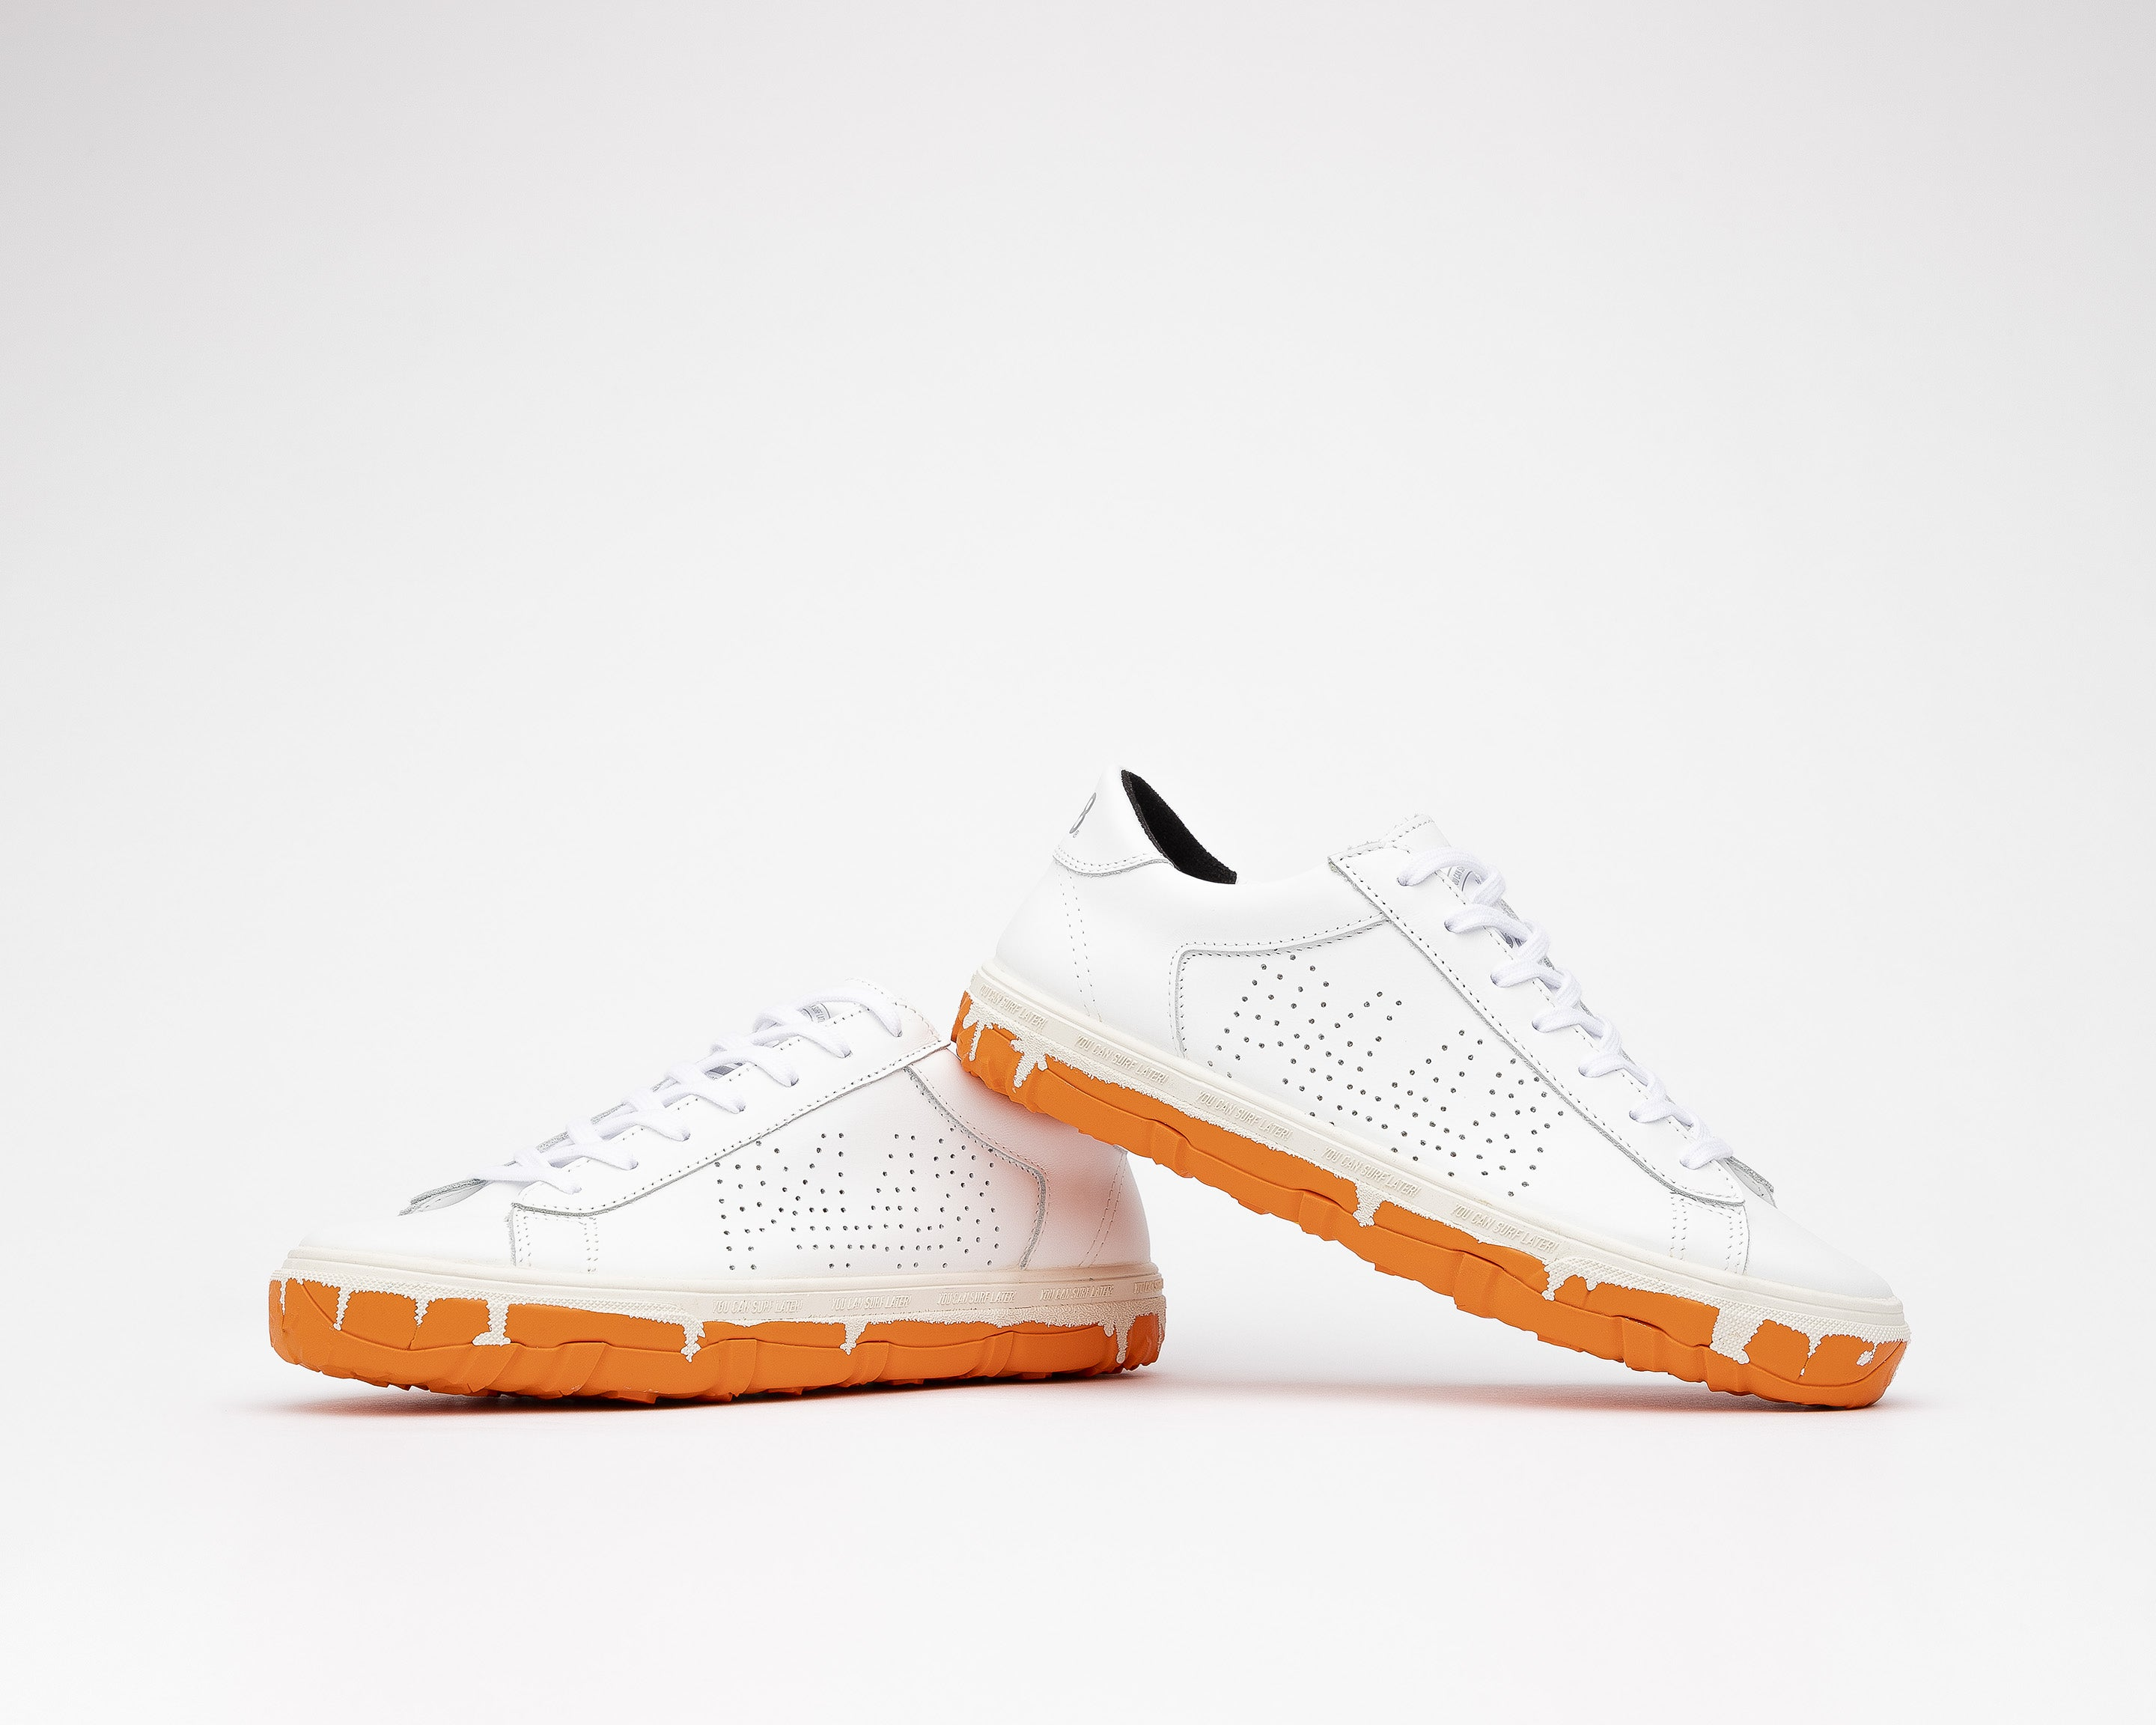 Y.C.S.L. Vibram Low-Top Sneaker in White/Orange - Detail